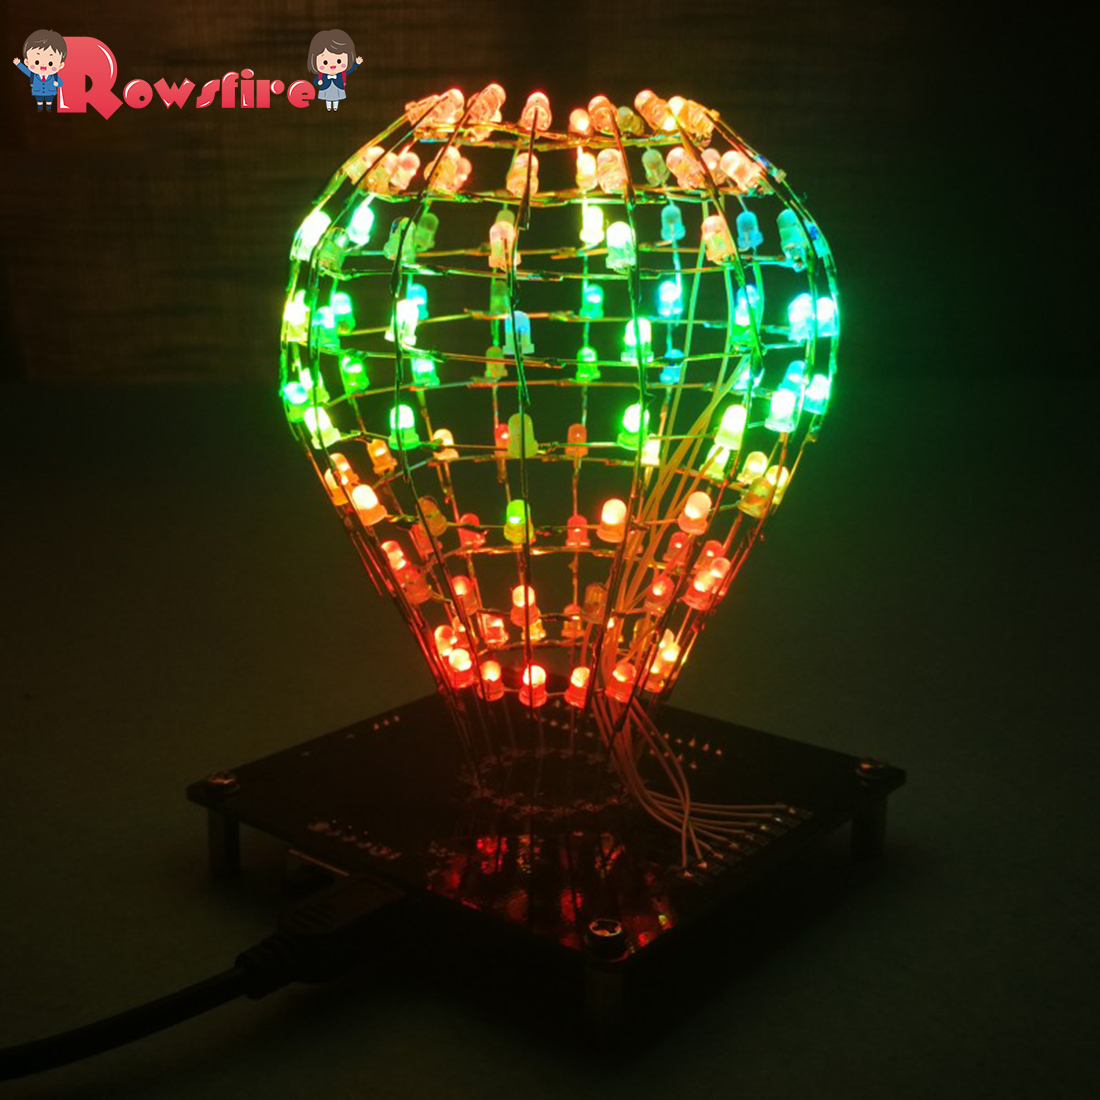 DIY LED Display Lamp Infrared Remote Control DIY Welding Light Kits DIY Lamp Brain-Training Toy -Light Cube Ball(Colorful Parts)